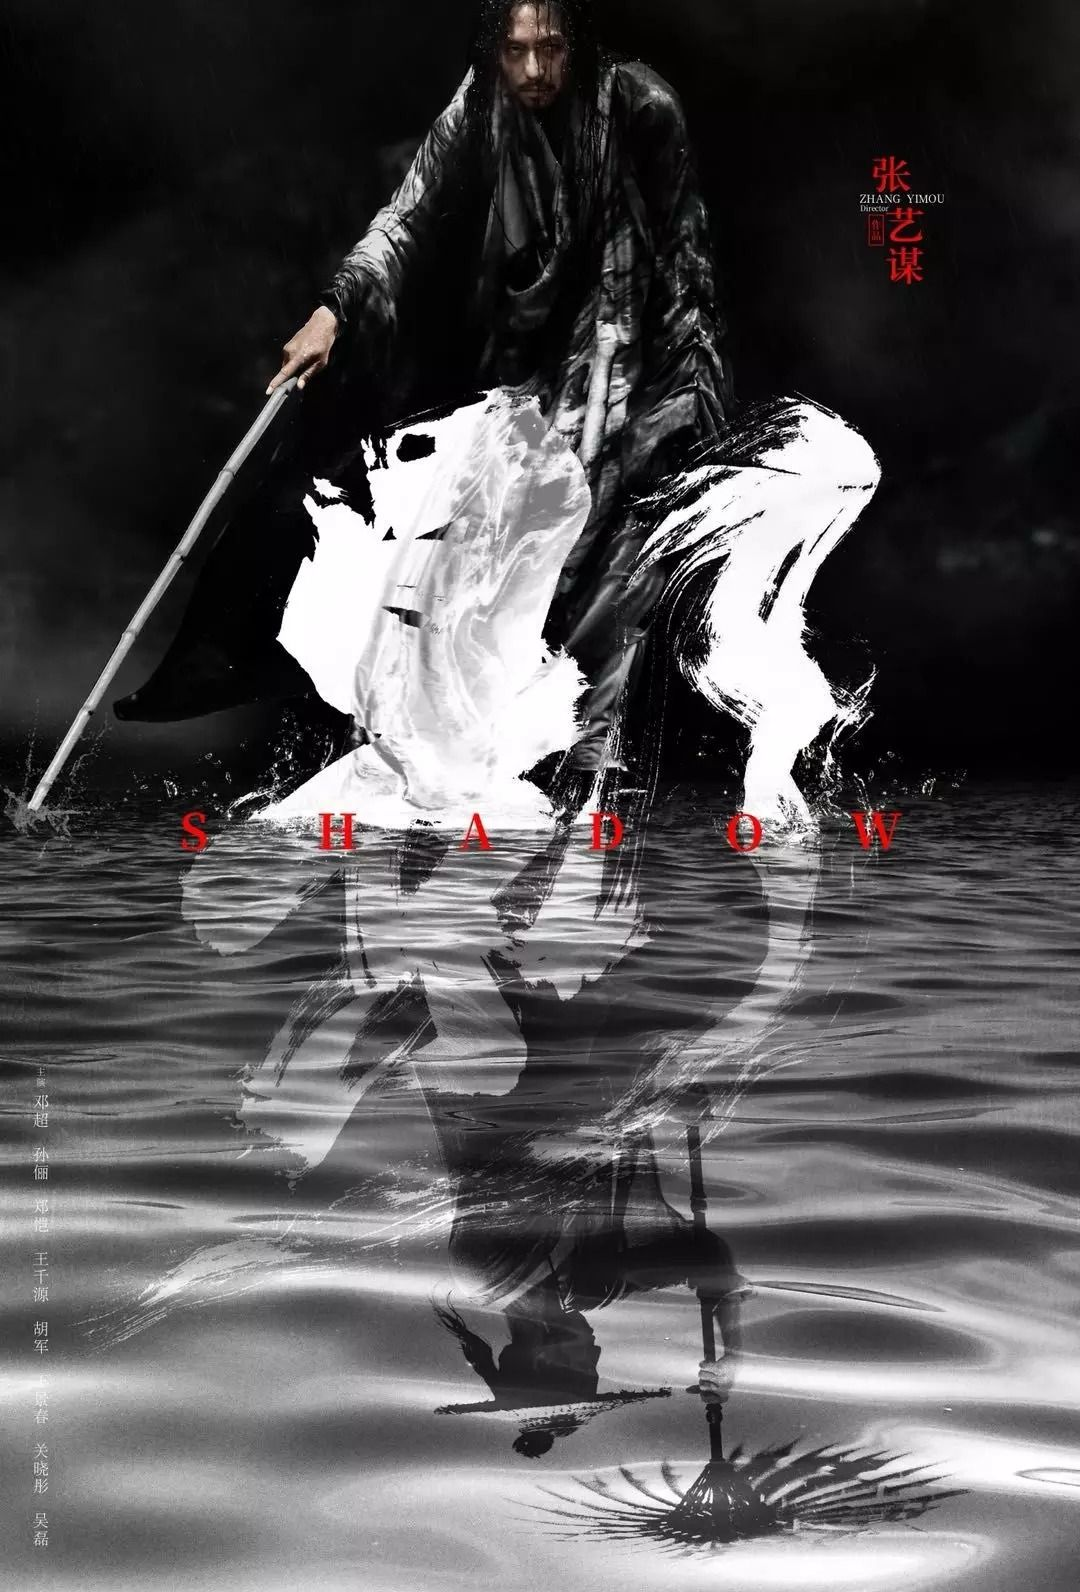 Shadow 影 (September 2018) in 2020 Poster, Film poster